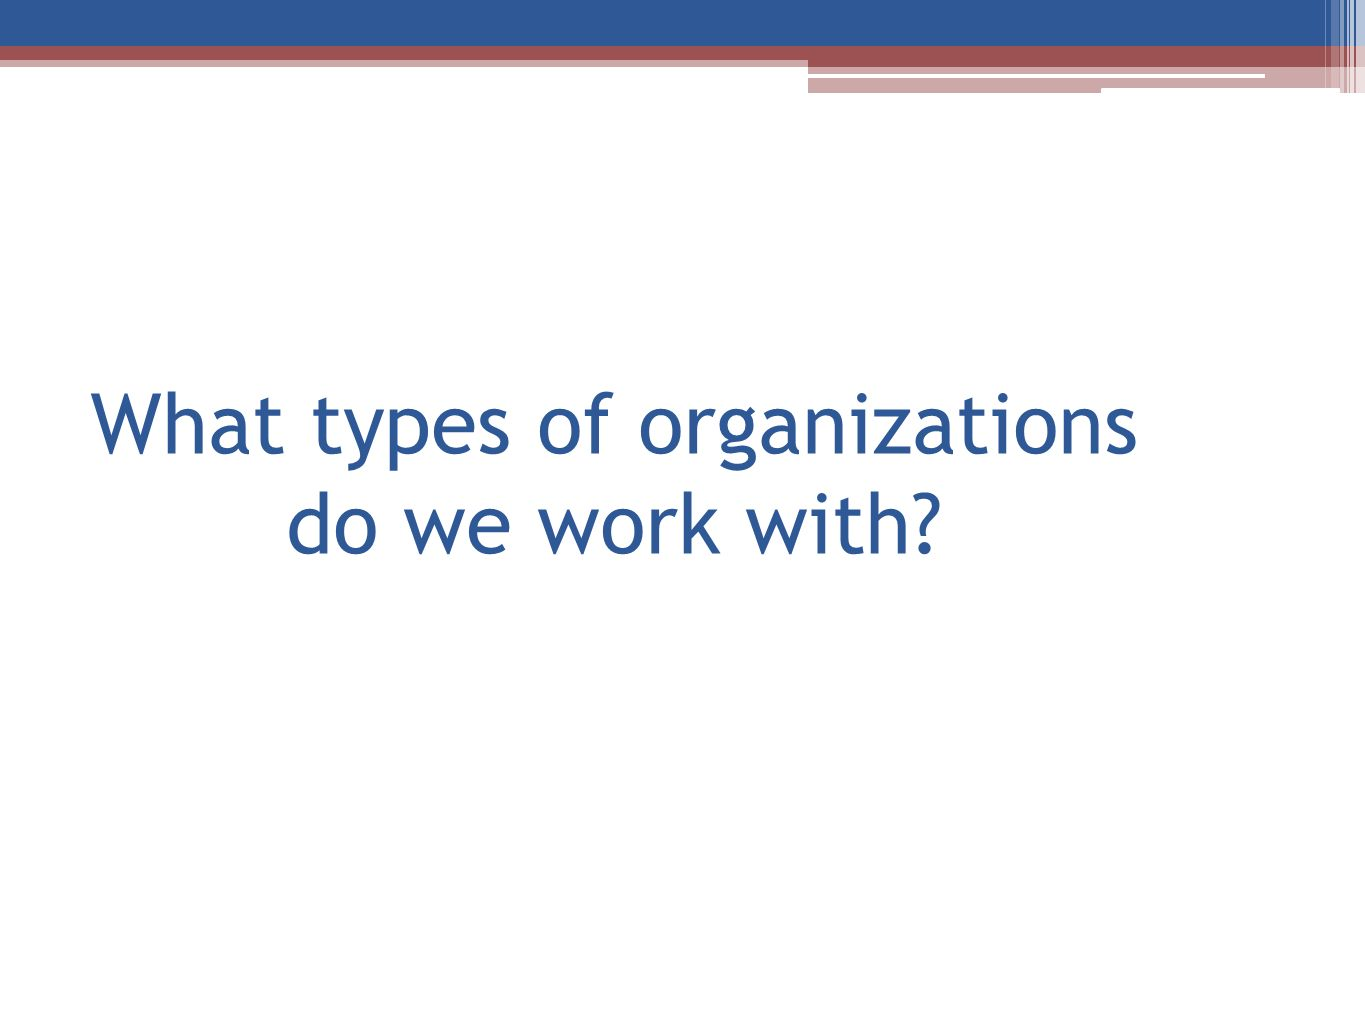 What types of organizations do we work with